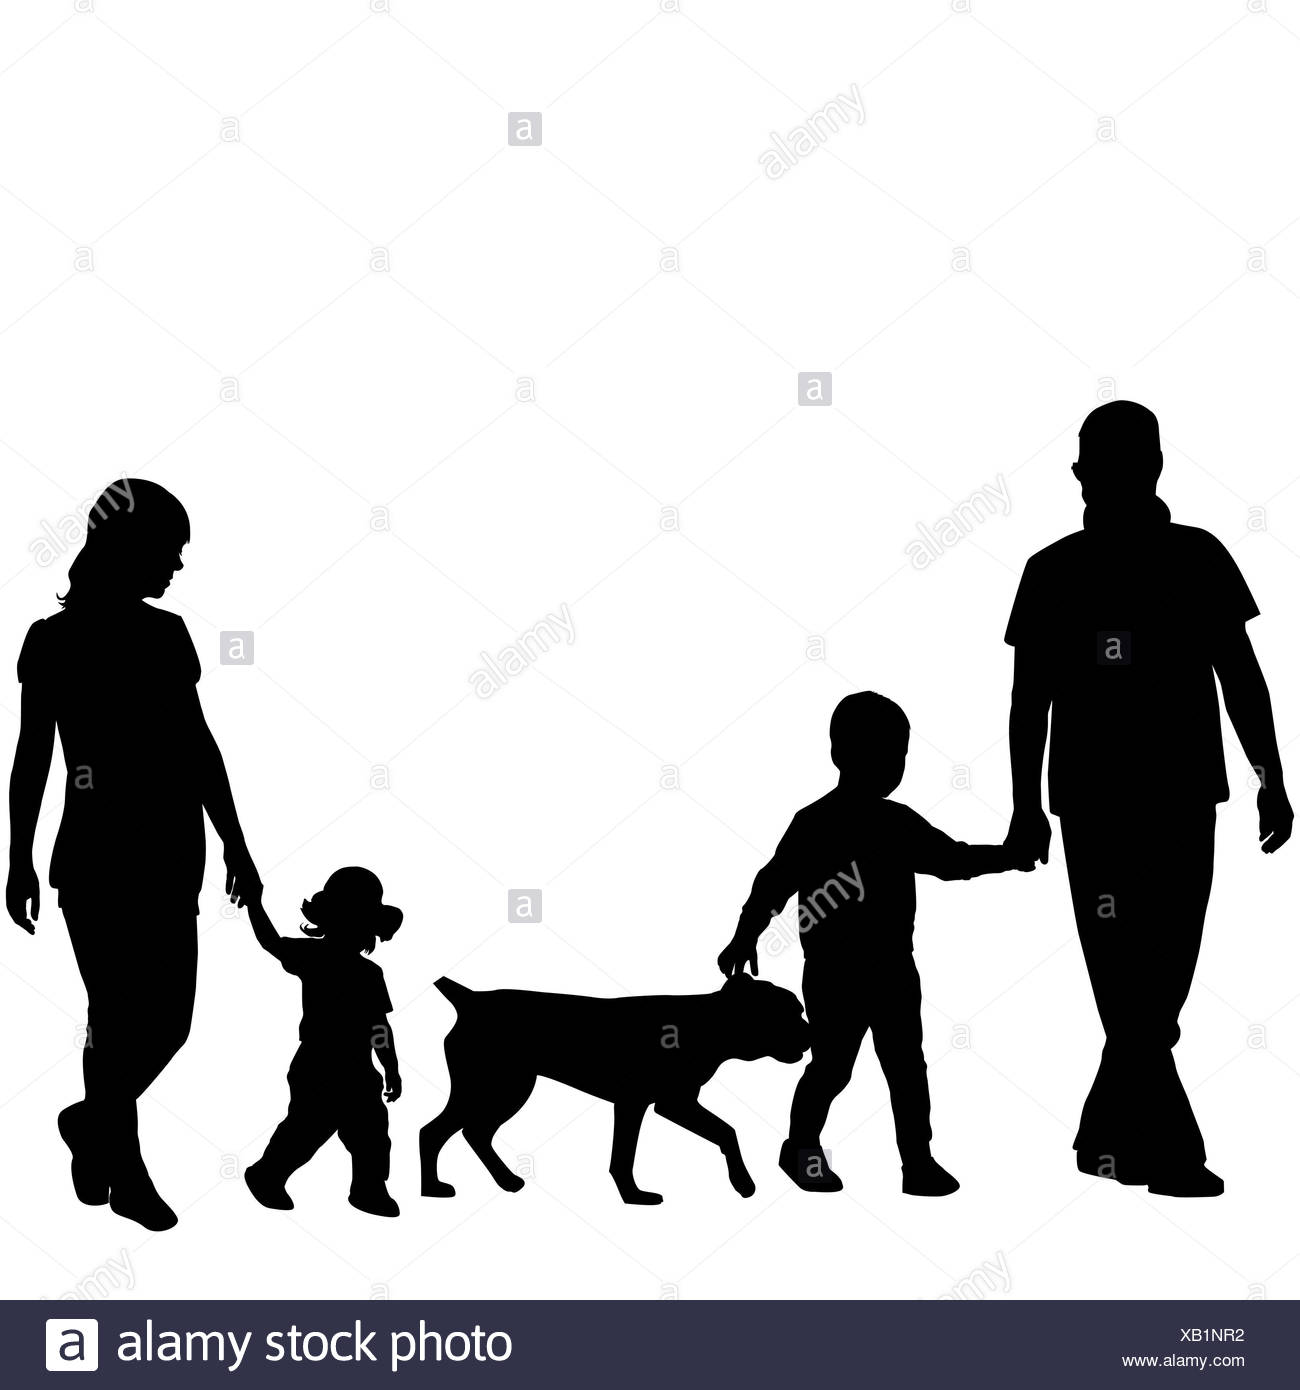 1300x1390 Silhouette Man Woman Walking In Black And White Stock Photos